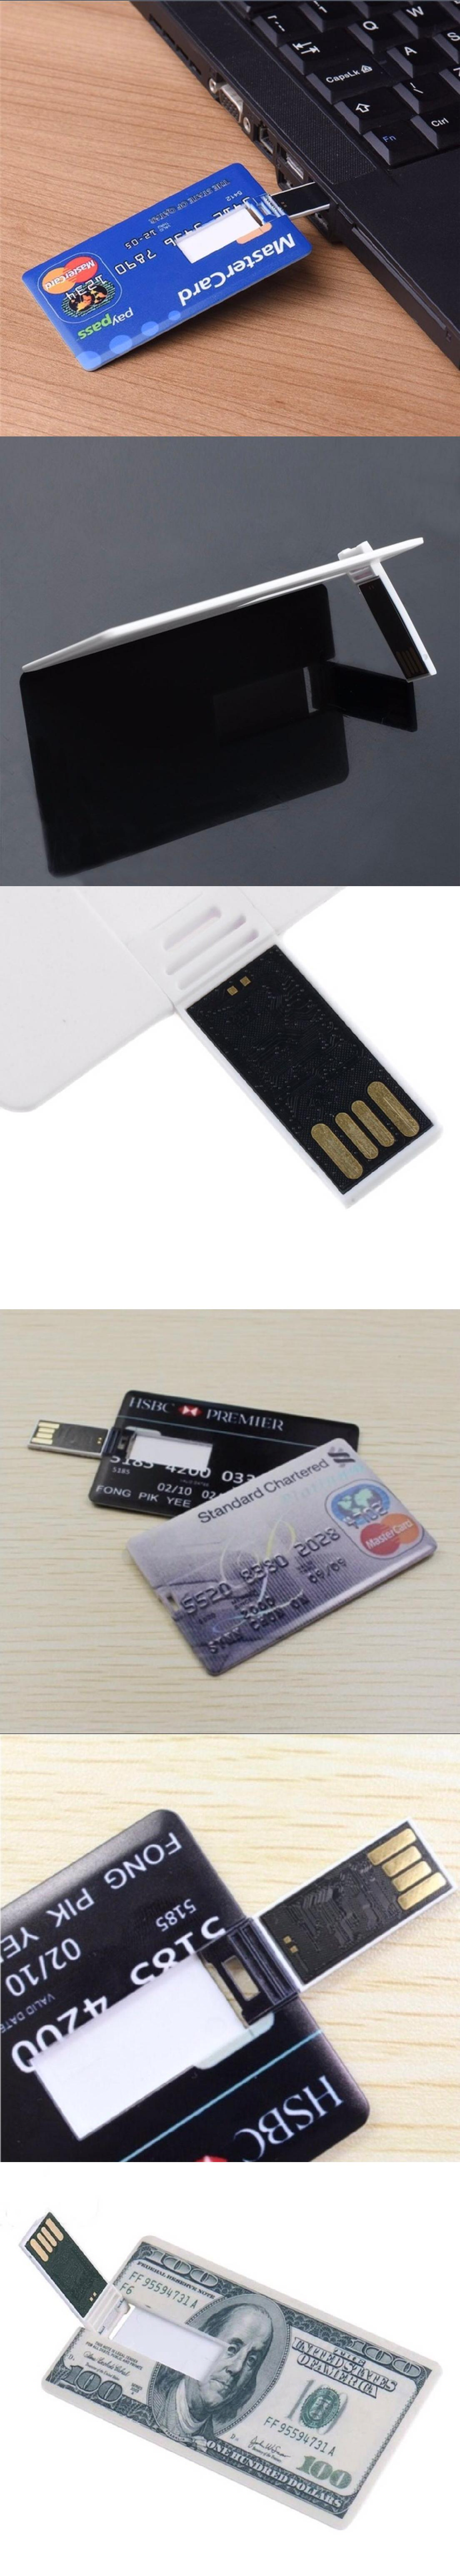 Newest usb flash printed pen pcb wholesale Price